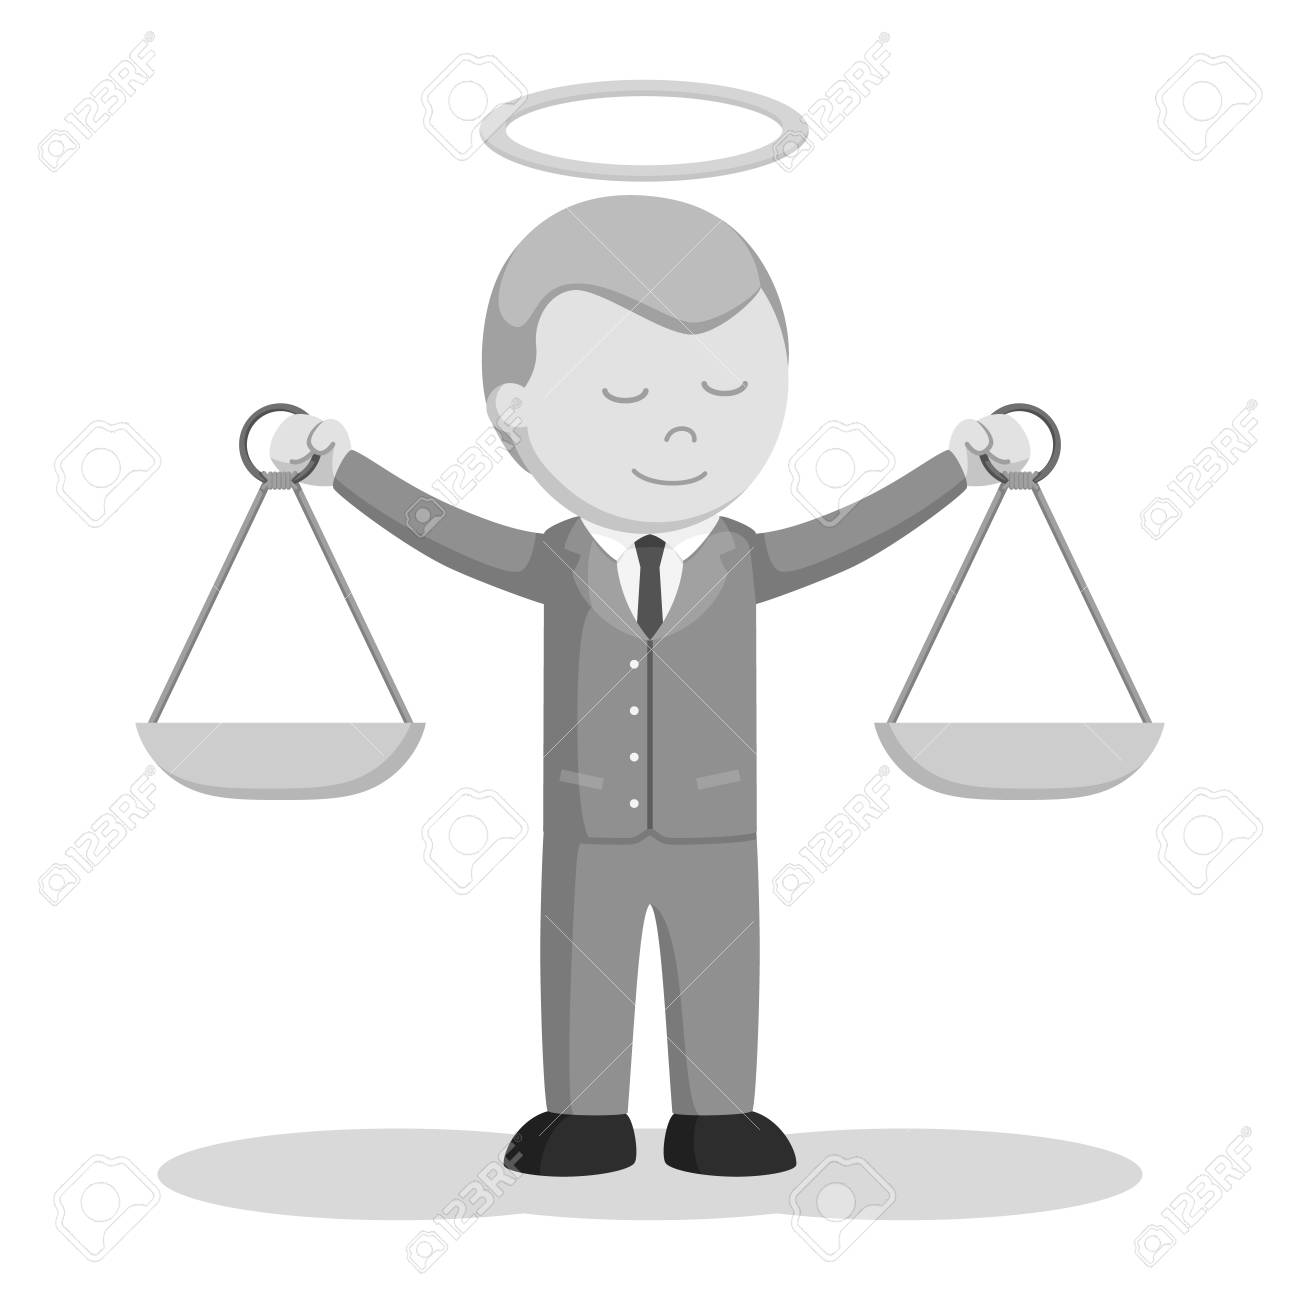 EPS Illustration - Lawyer woman - speech in court icon, vector  illustration, black sign on isolated background. Vector Clipart gg99779542  - GoGraph